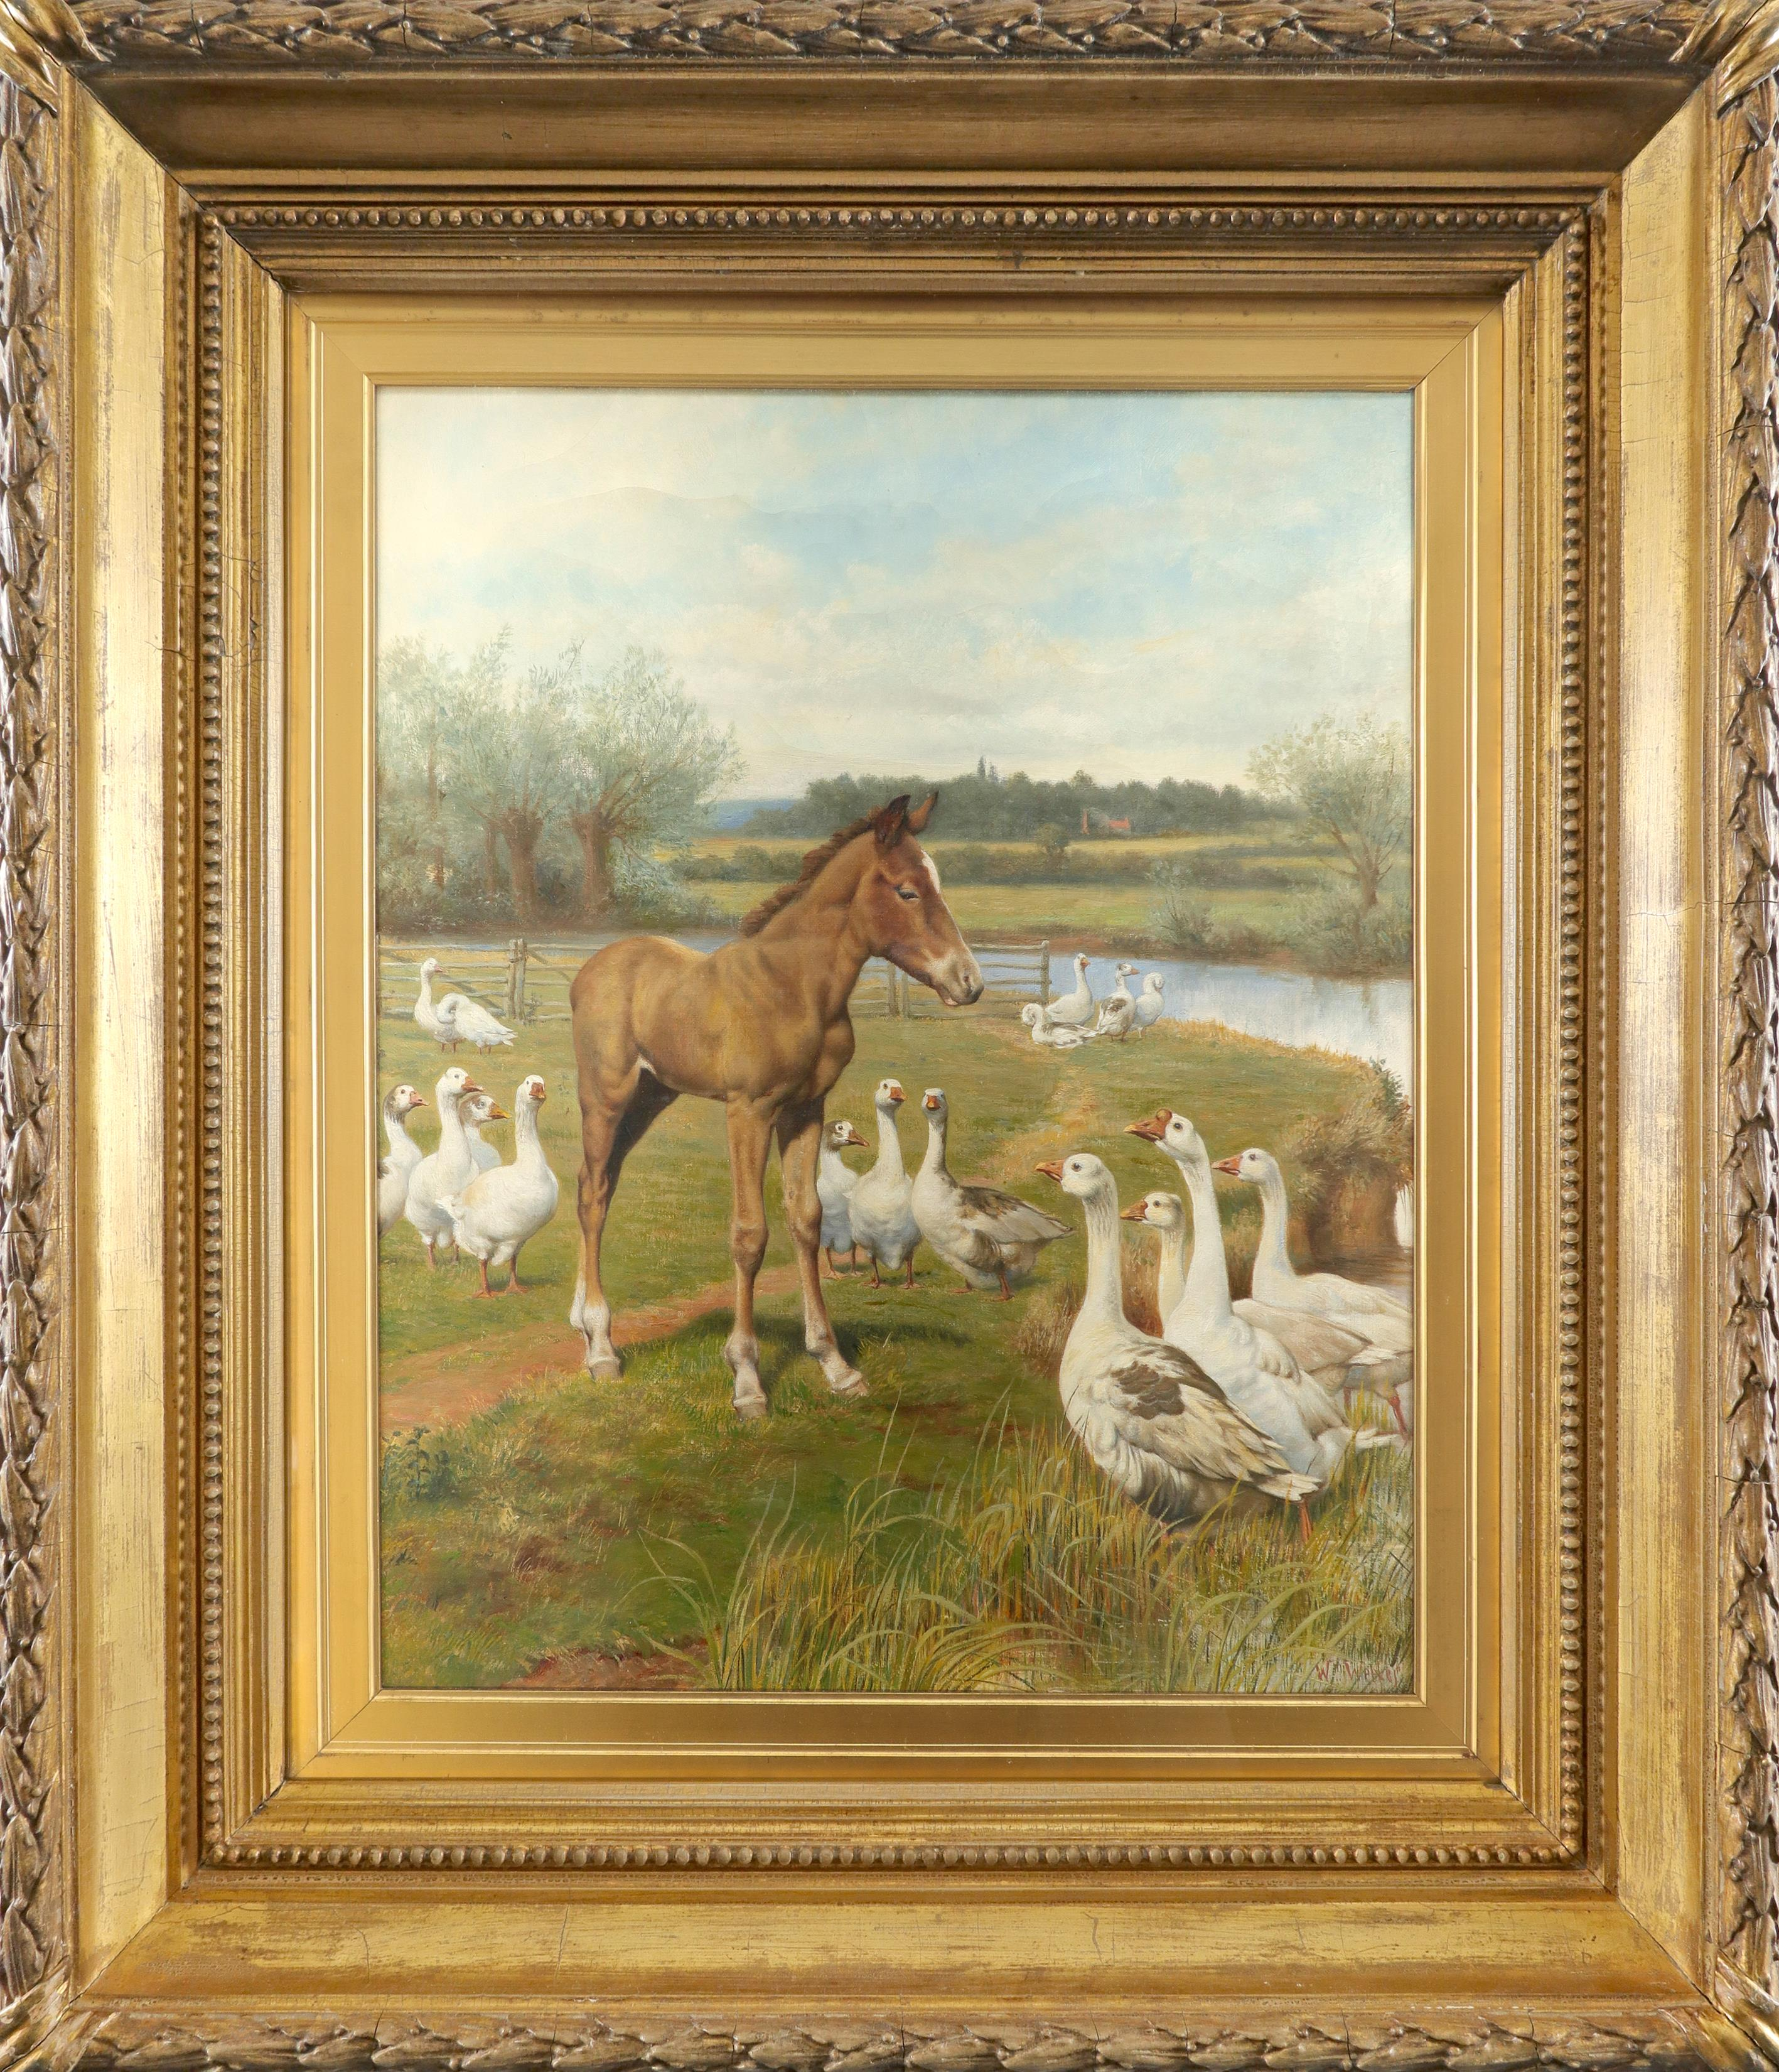 Herbert William Weekes (1841-1914) A mutual admiration Signed W Weekes (lower right) Oil on canvas - Image 2 of 3